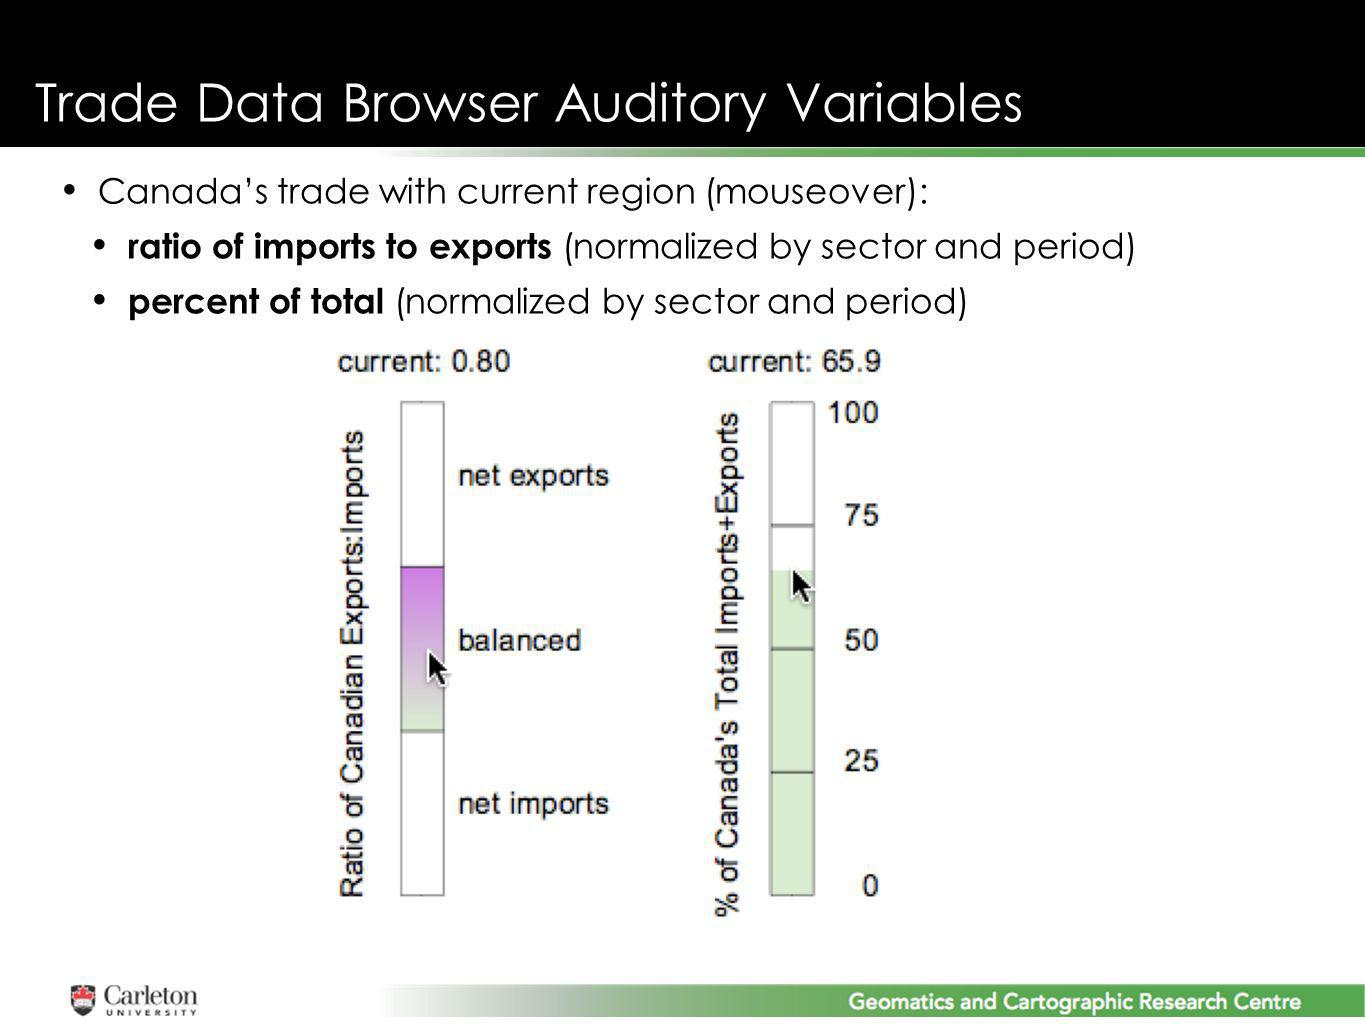 Trade Data Browser Auditory Variables Canadas trade with current region (mouseover): ratio of imports to exports (normalized by sector and period) percent of total (normalized by sector and period)